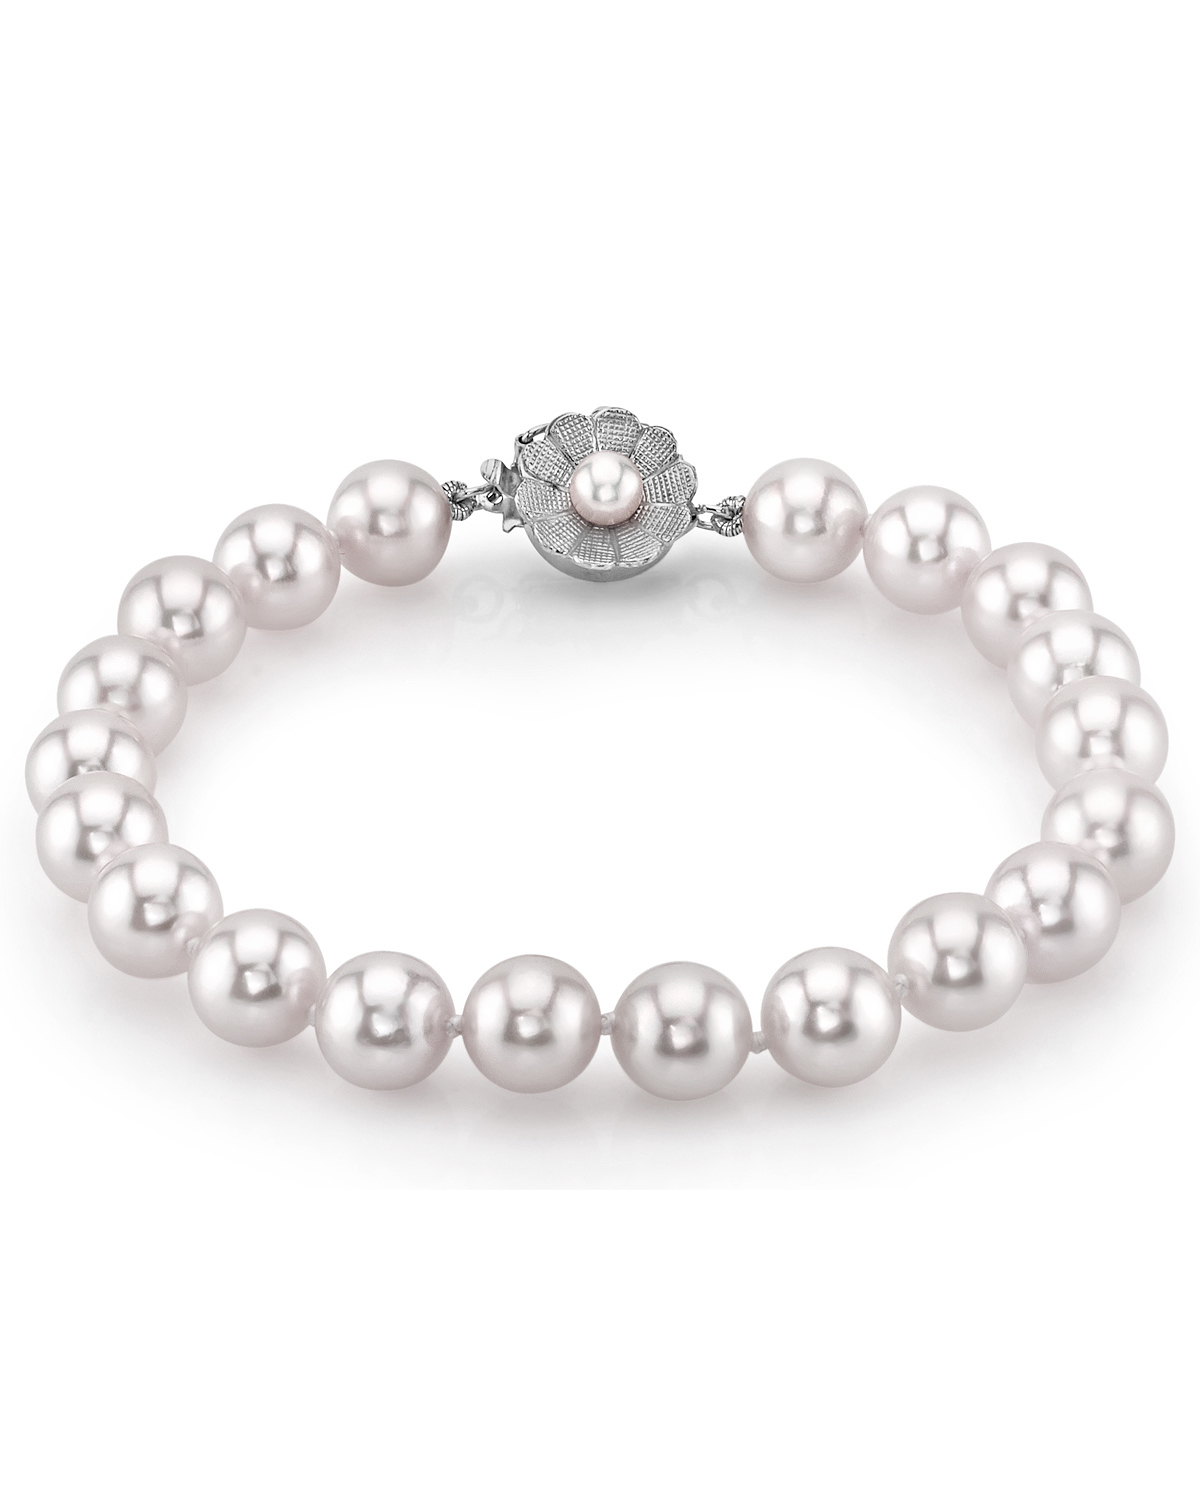 8-9mm White South Sea Pearl Bracelet - AAAA Quality